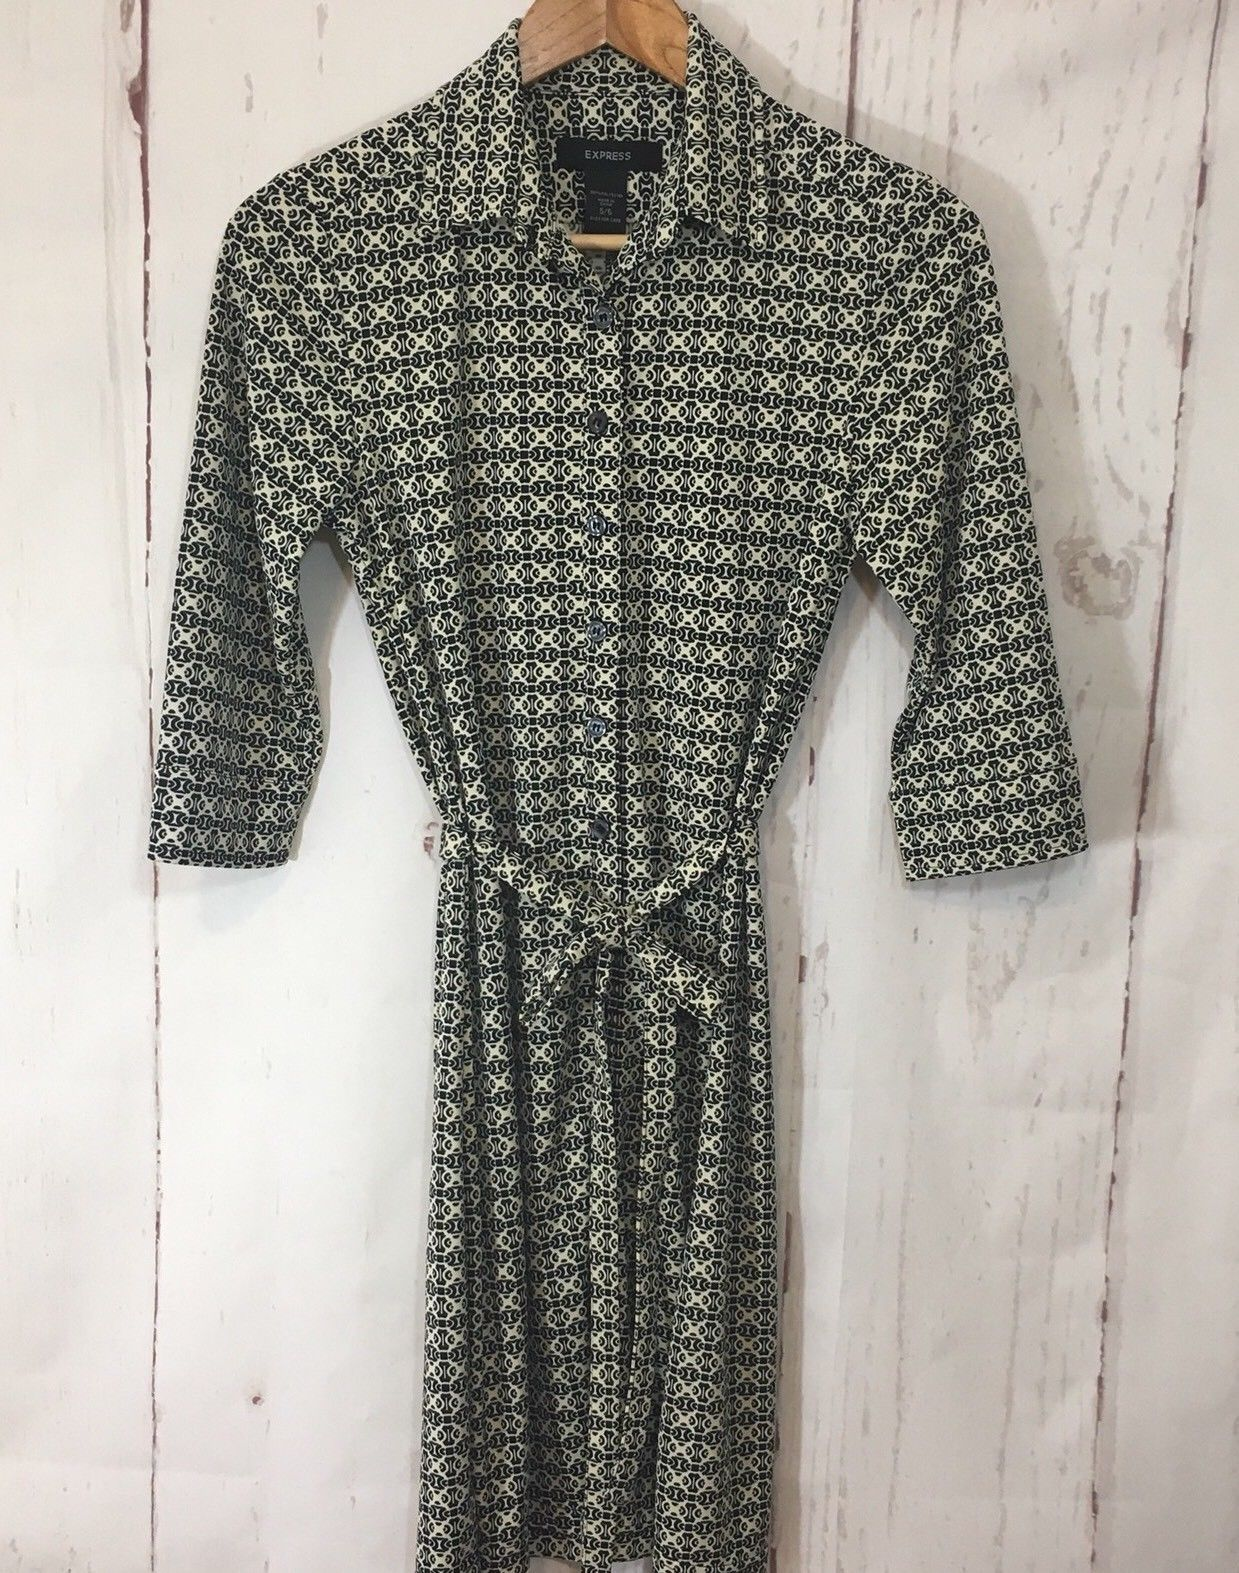 Express Dress Button Down Sz 5/6 3/4 Collared Belted 3/4 Sleeve Career image 3